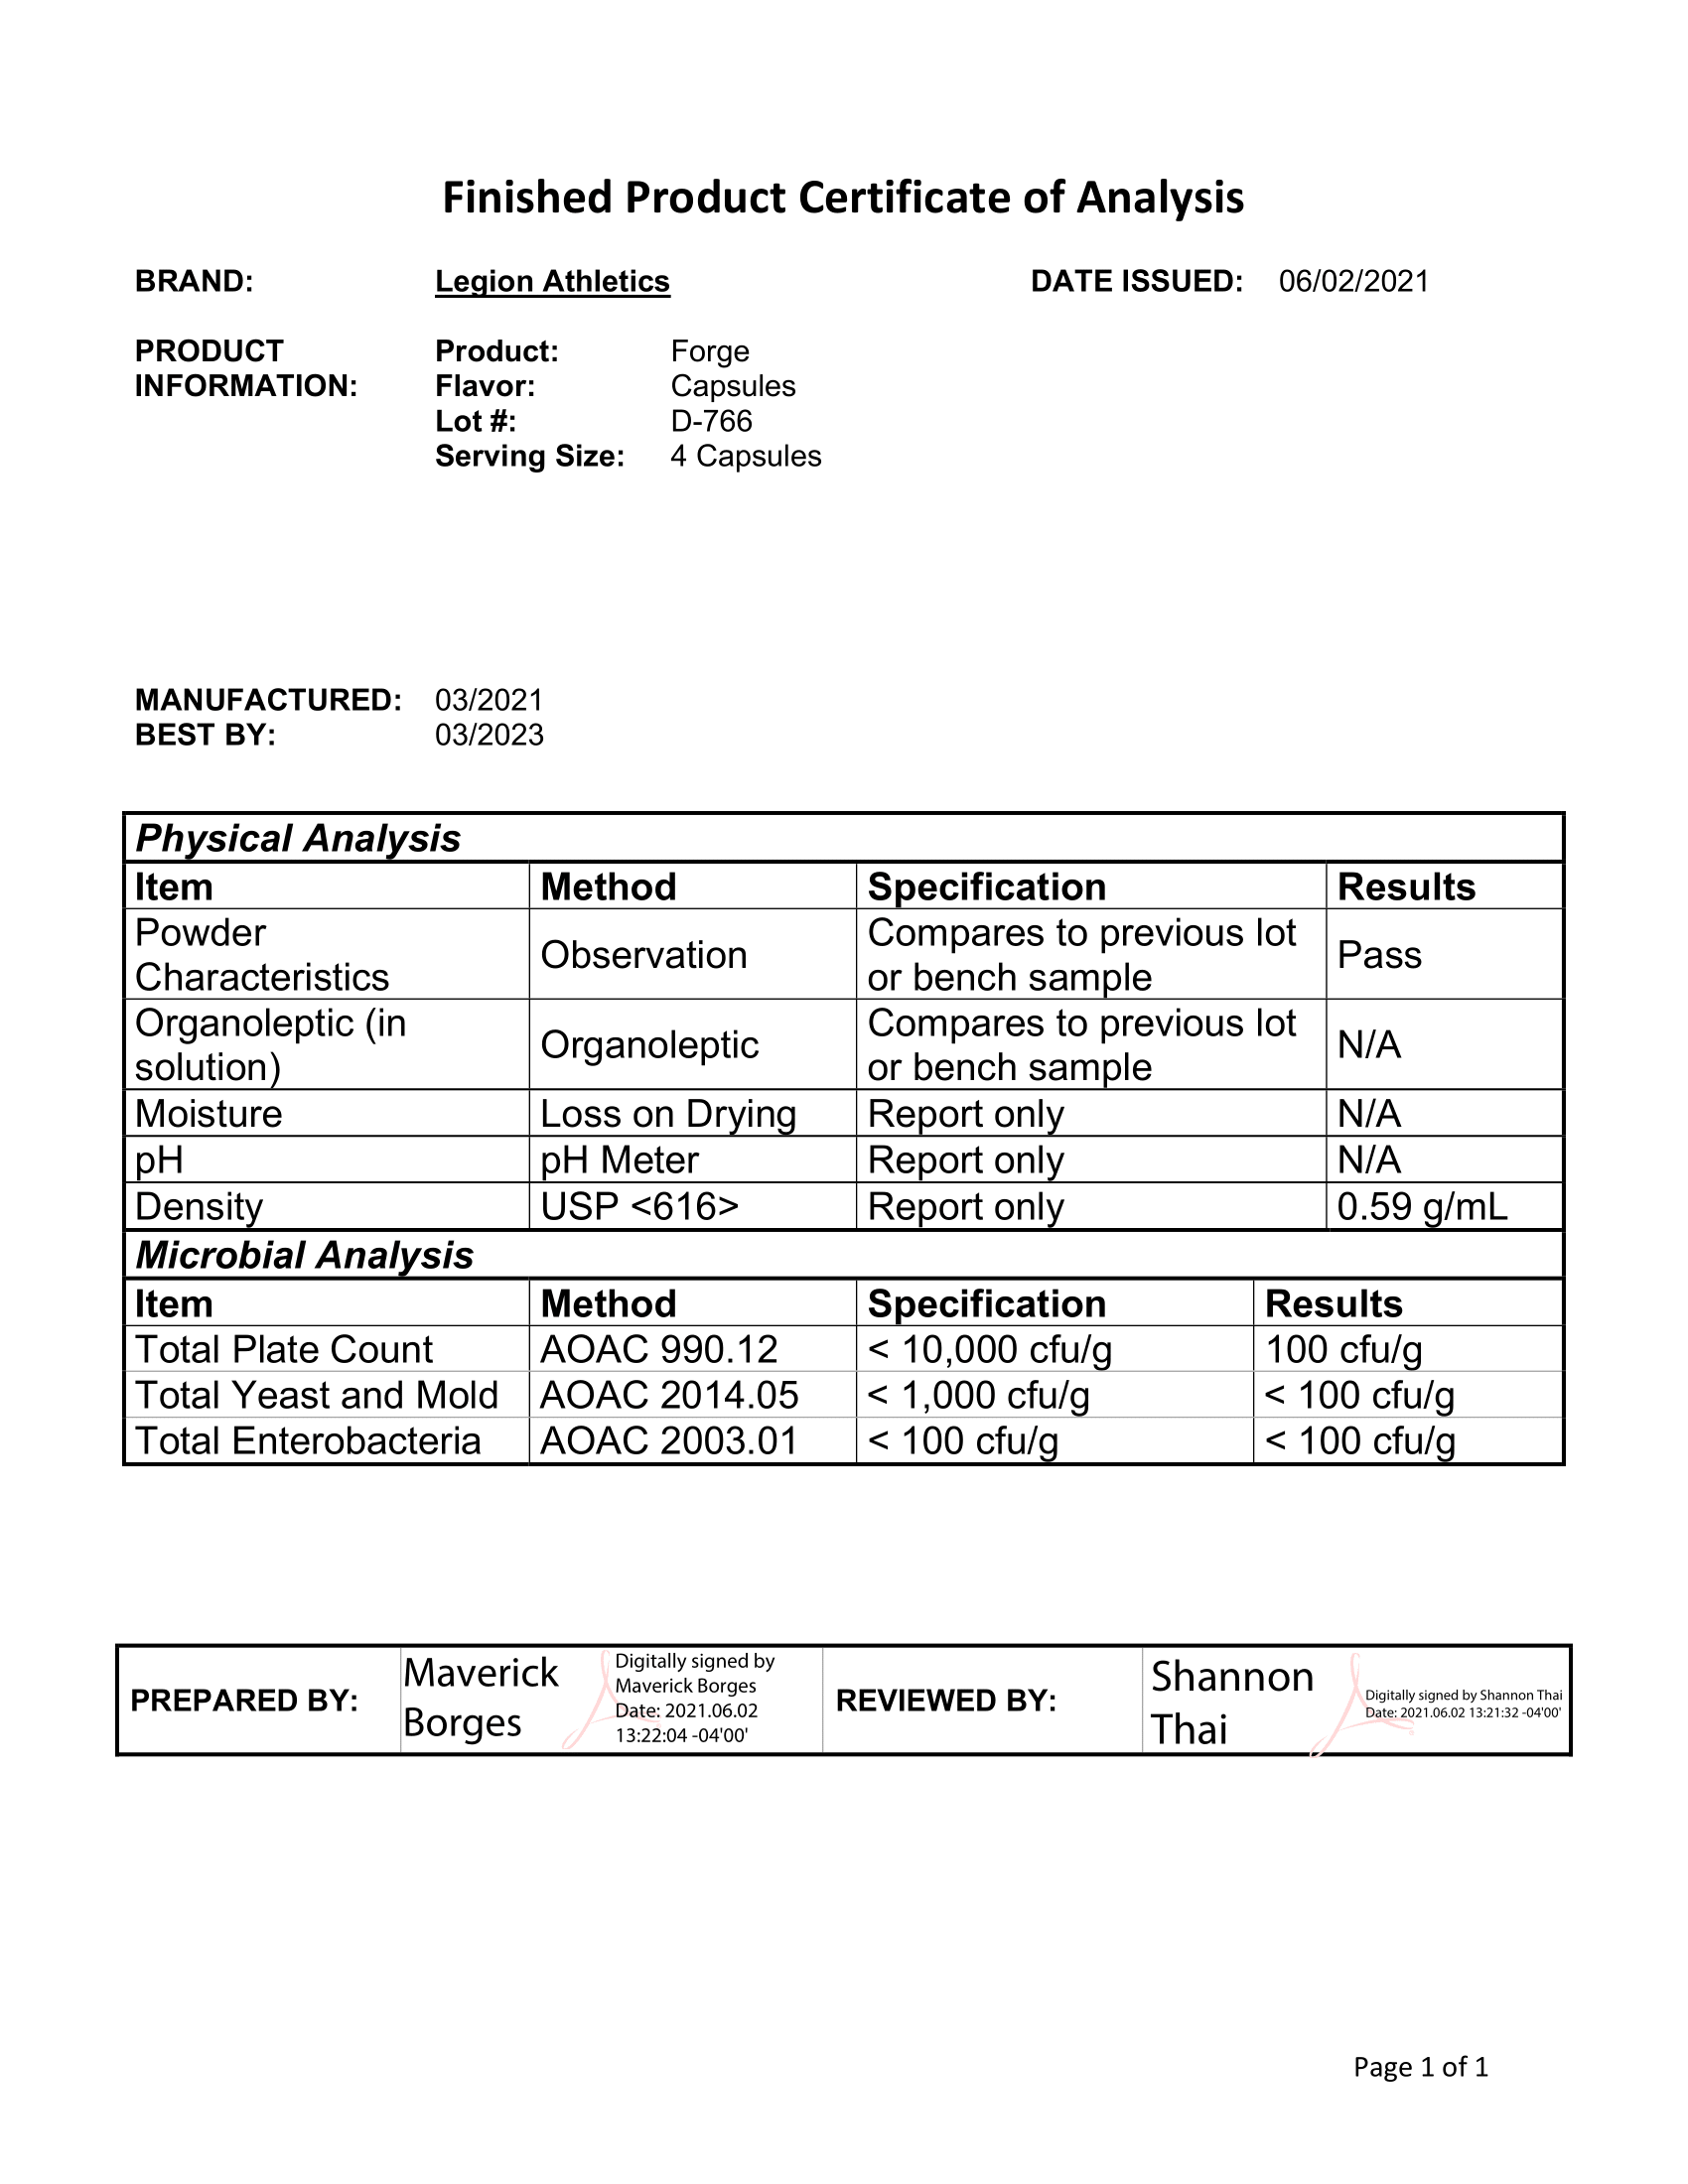 Forge Lab Test Certificate